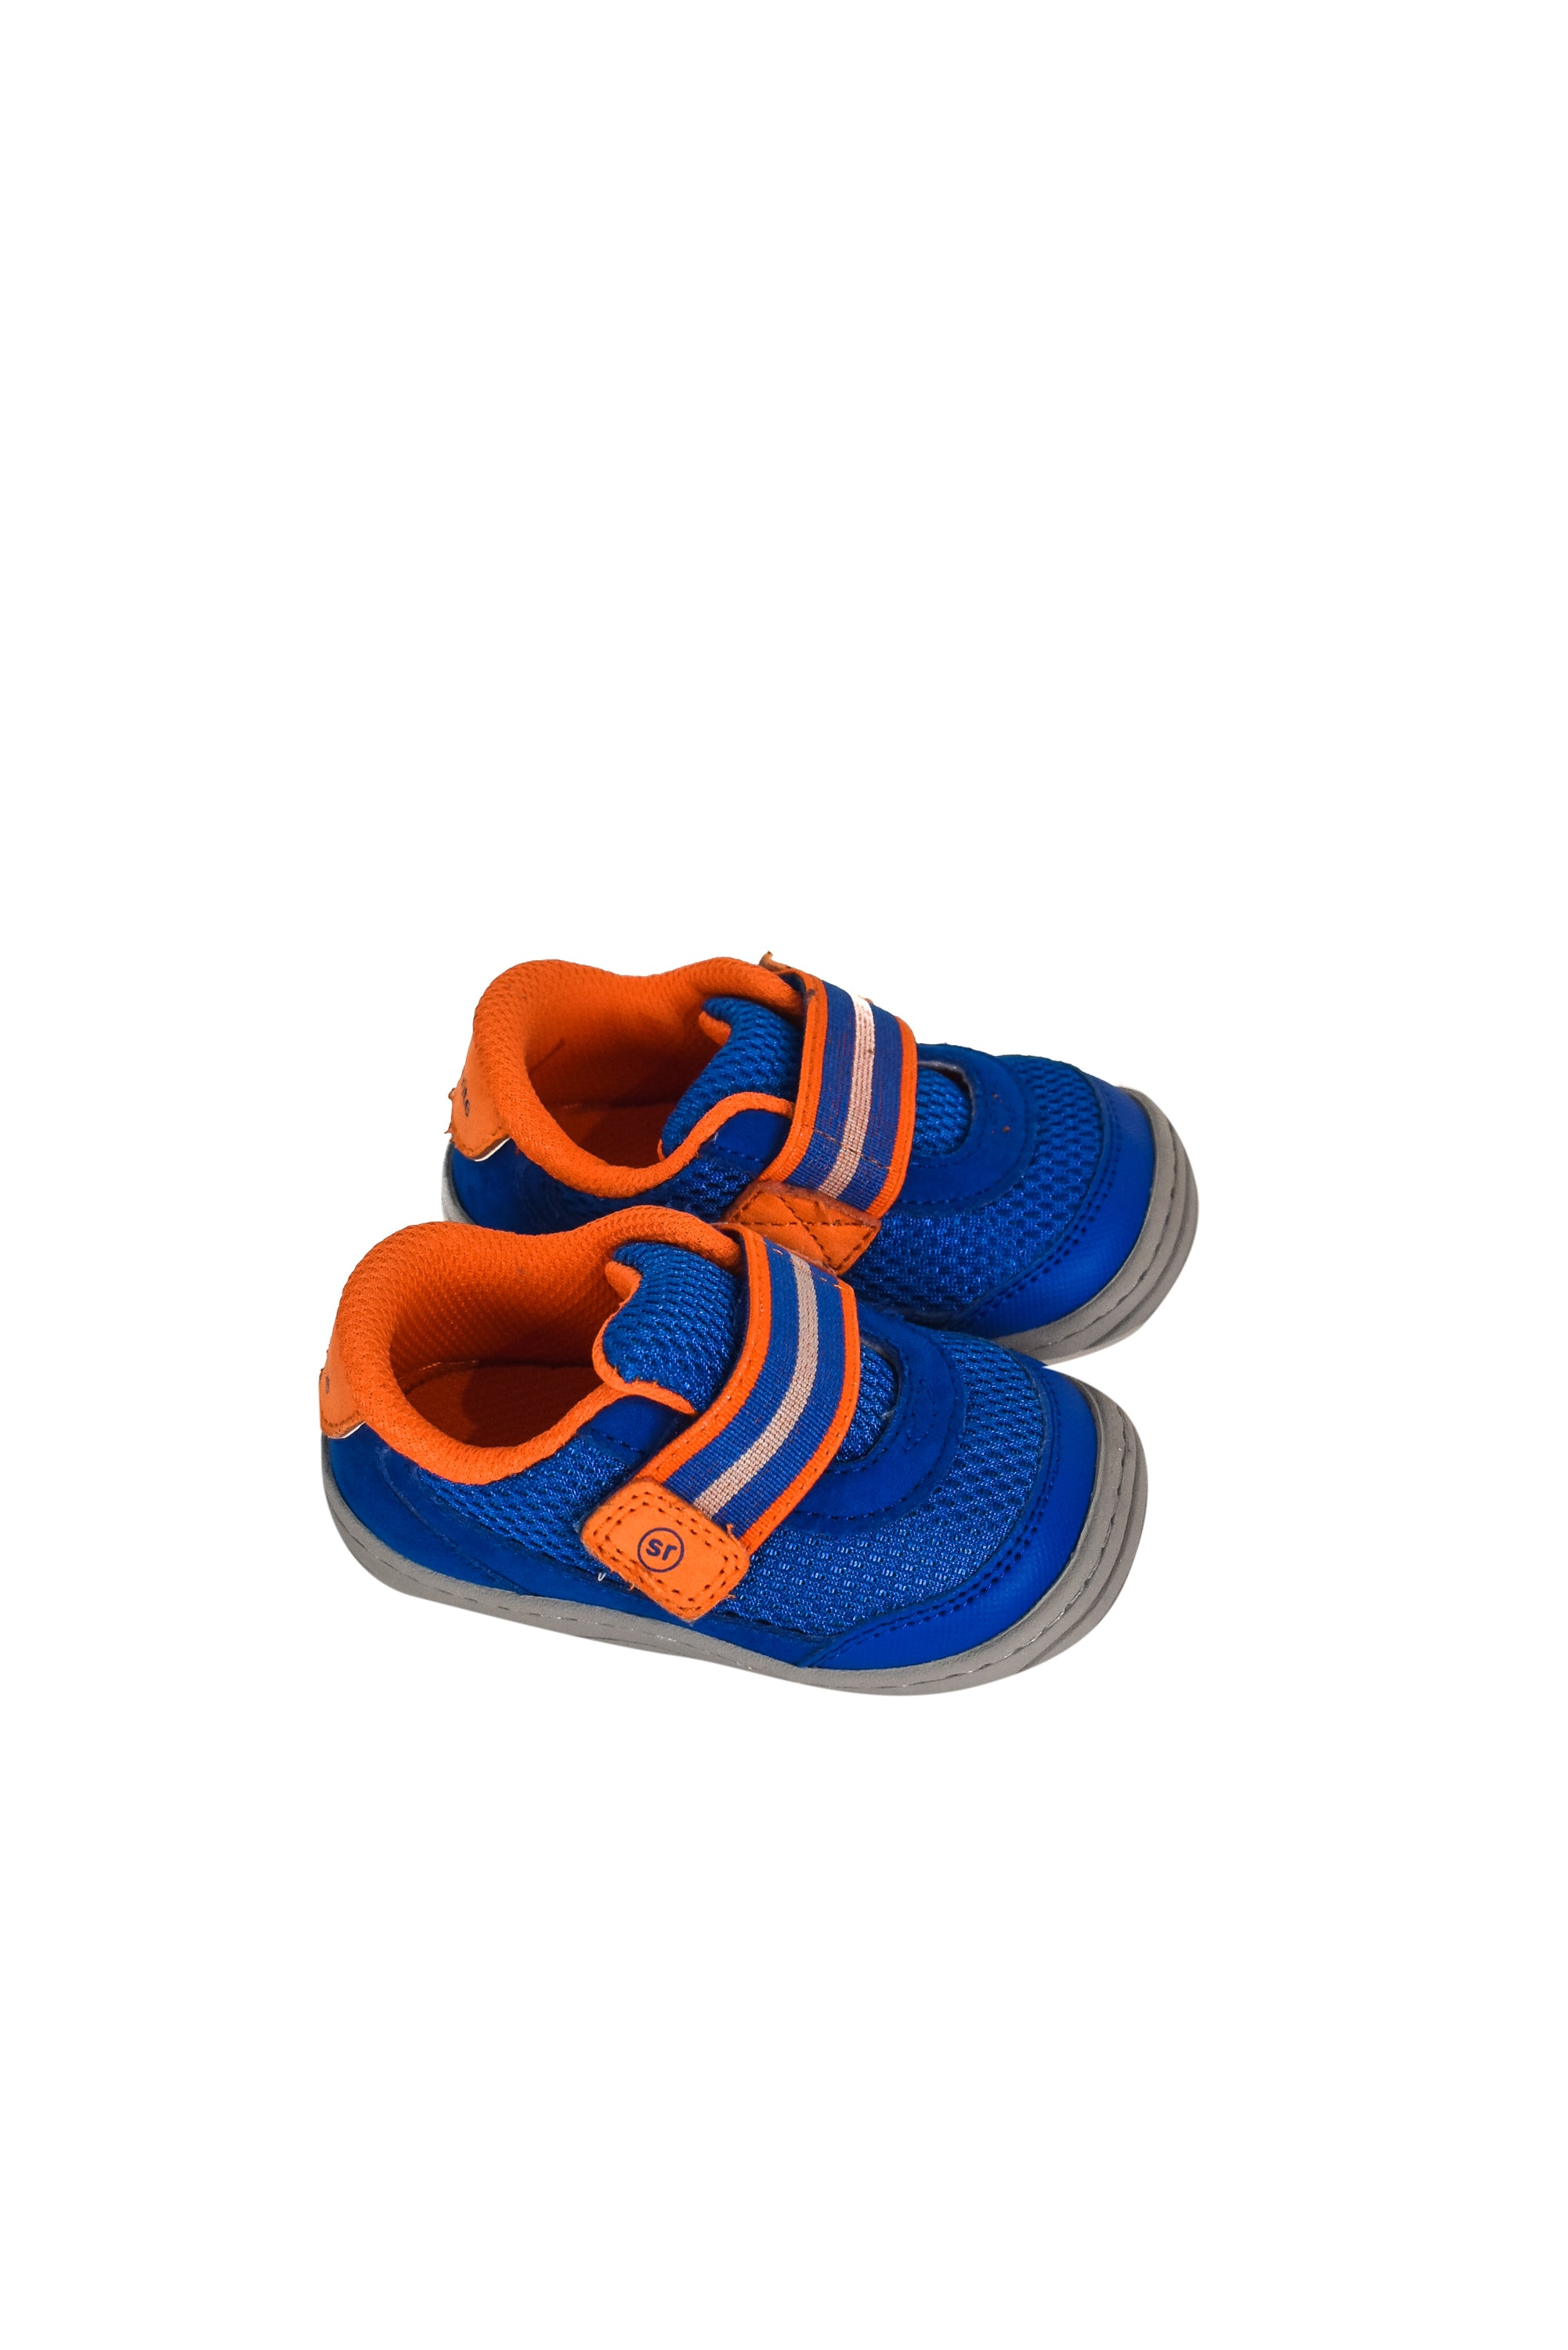 10035308 Stride Rite Baby~Shoes 12-18M (EU20) at Retykle